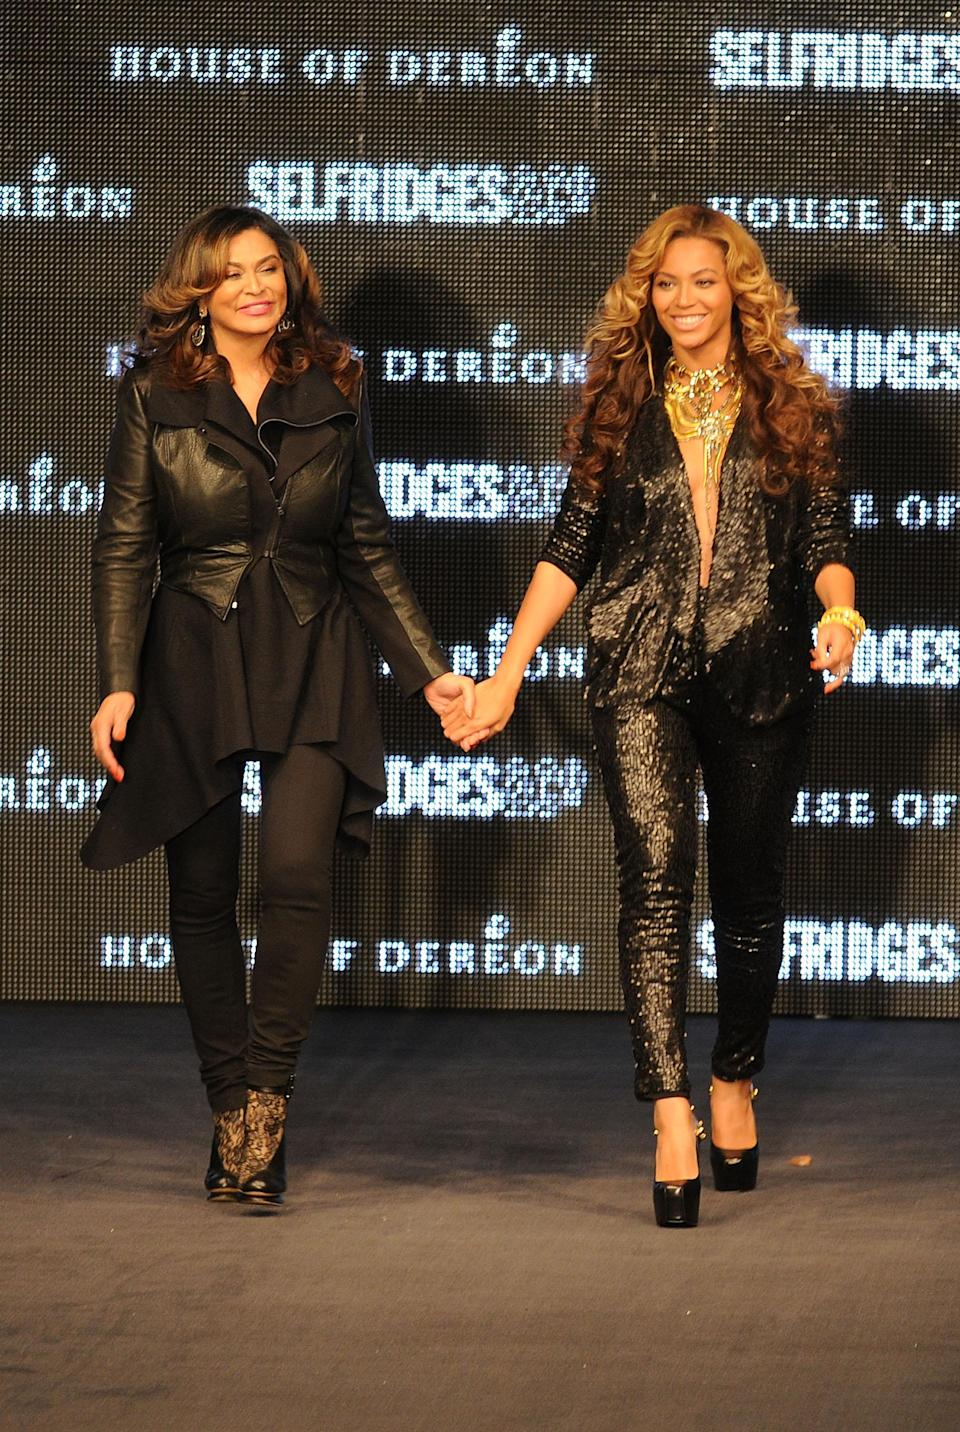 """Beyoncé and her mother Tina Knowles launched House of Deréon in 2004. The ready-to-wear line included everything from jeans to evening gowns. Its tagline was """"Couture. Kick. Soul."""" It shuttered in 2012, though Beyoncé now has a successful line with Adidas, titled Ivy Park."""